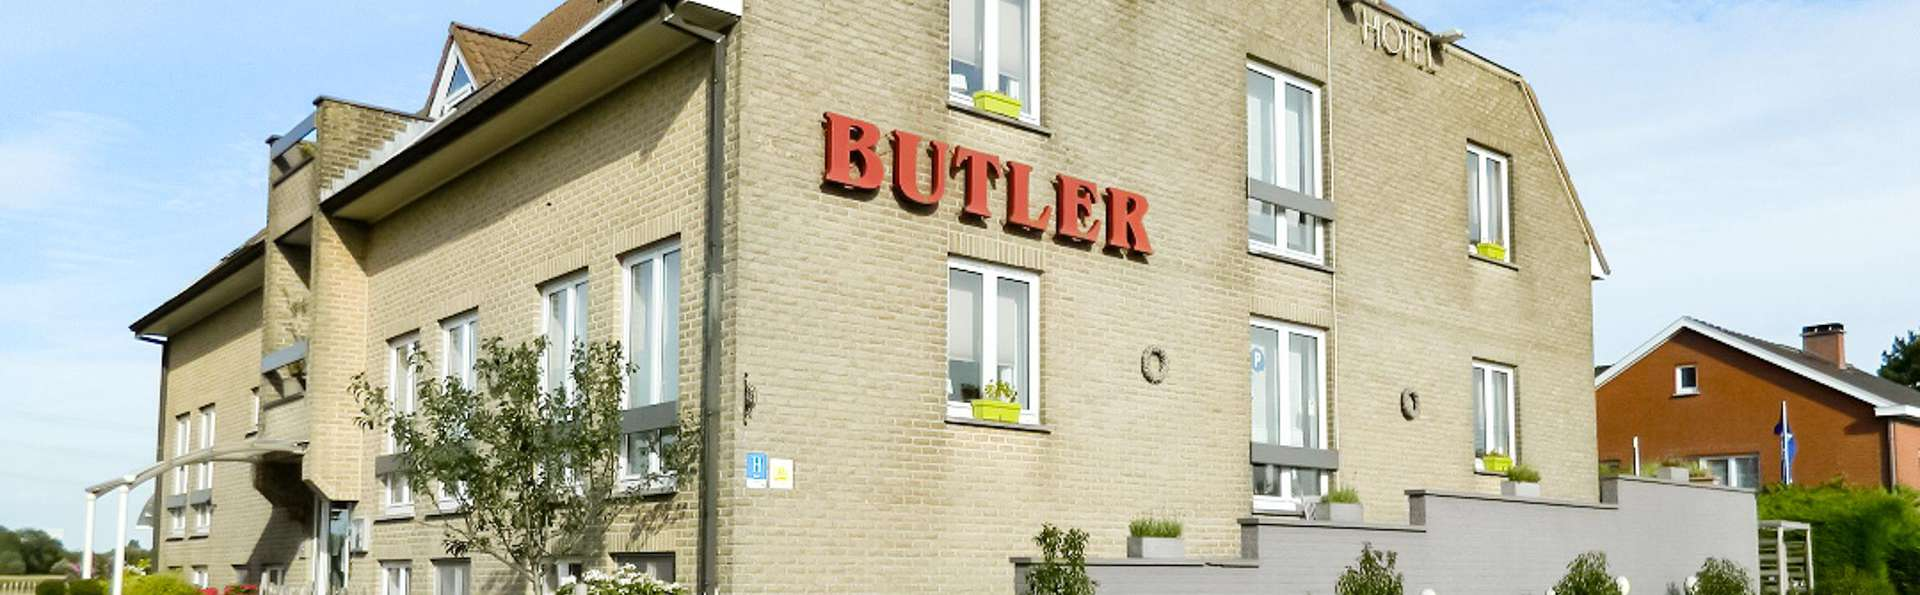 Hotel Butler - EDIT_NEW_FRONT_01.jpg